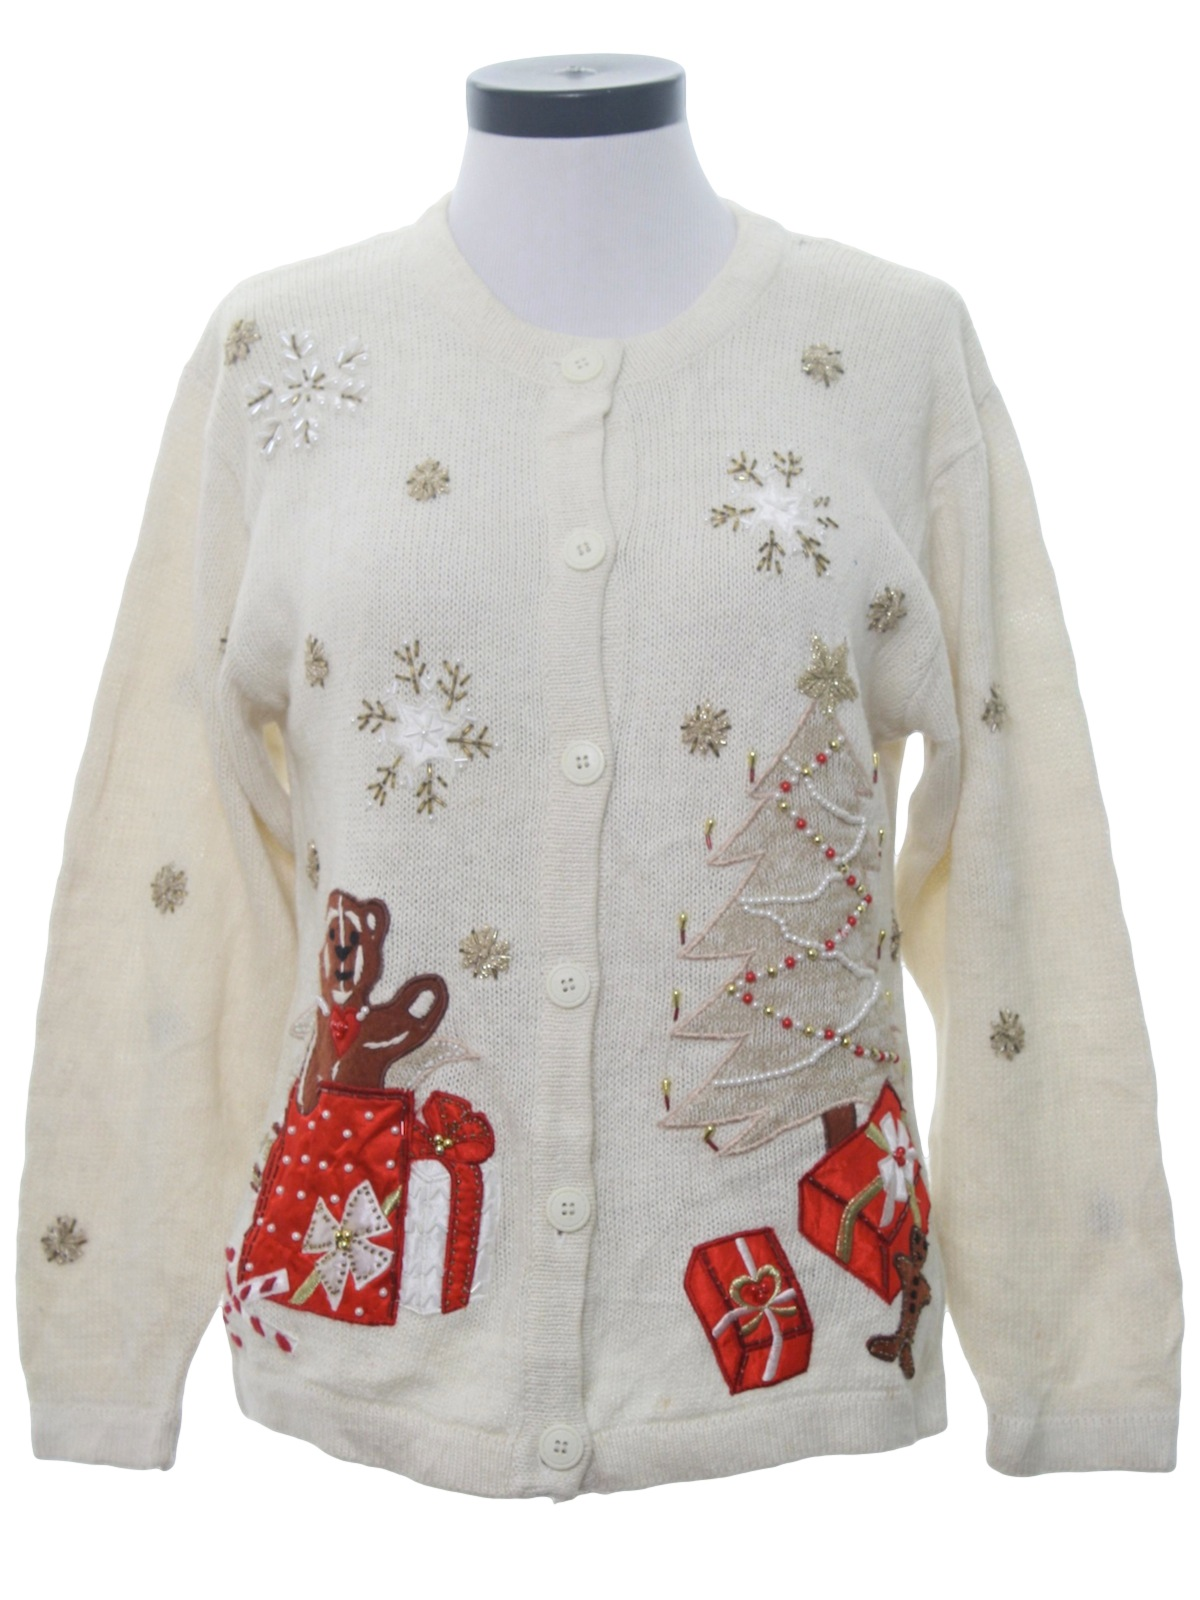 Gingerbread man under tree embroidered gold and pearl beaded stars